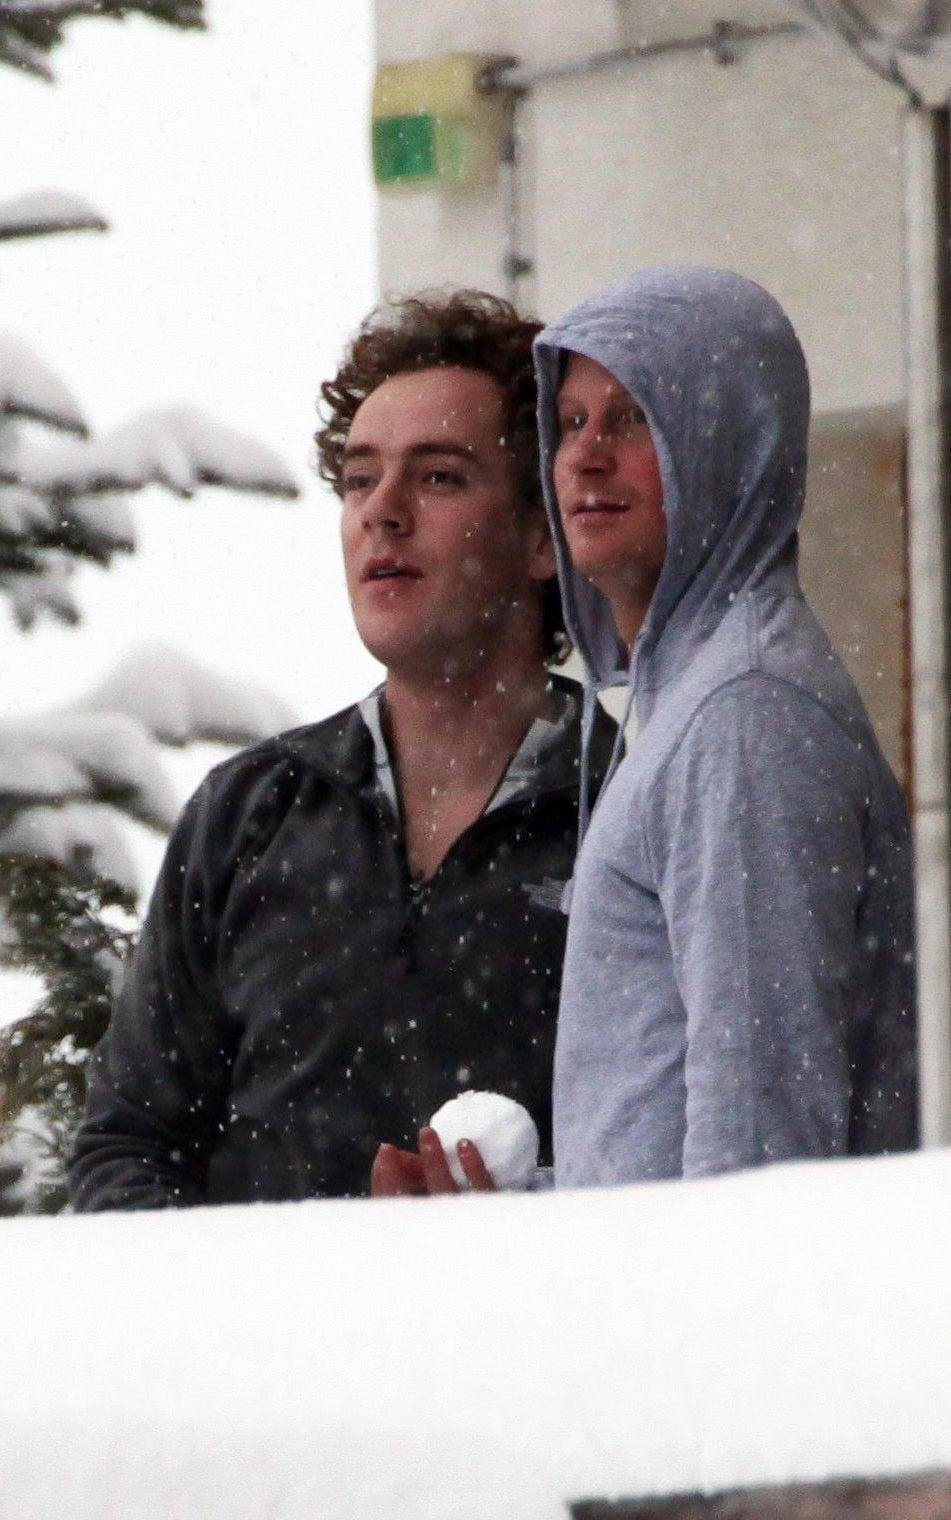 Prince Harry and his friend Tom Inskip throw snowballs from a hotel balcony at the Swiss resort of Verbier - Mark Large/ANL/Shutterstock